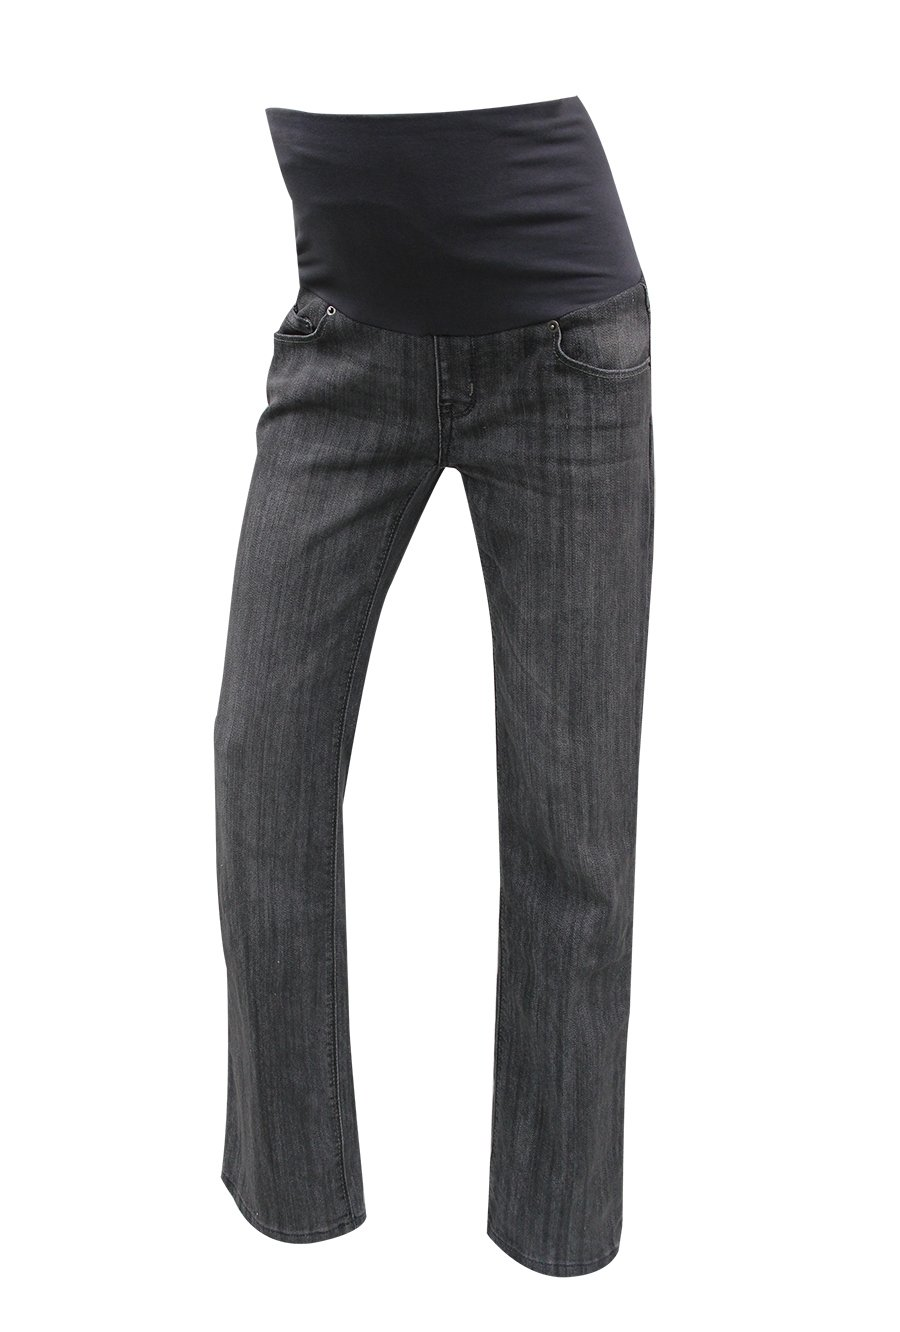 9months Women's Full Panel Maternity Relaxed Fit Jeans